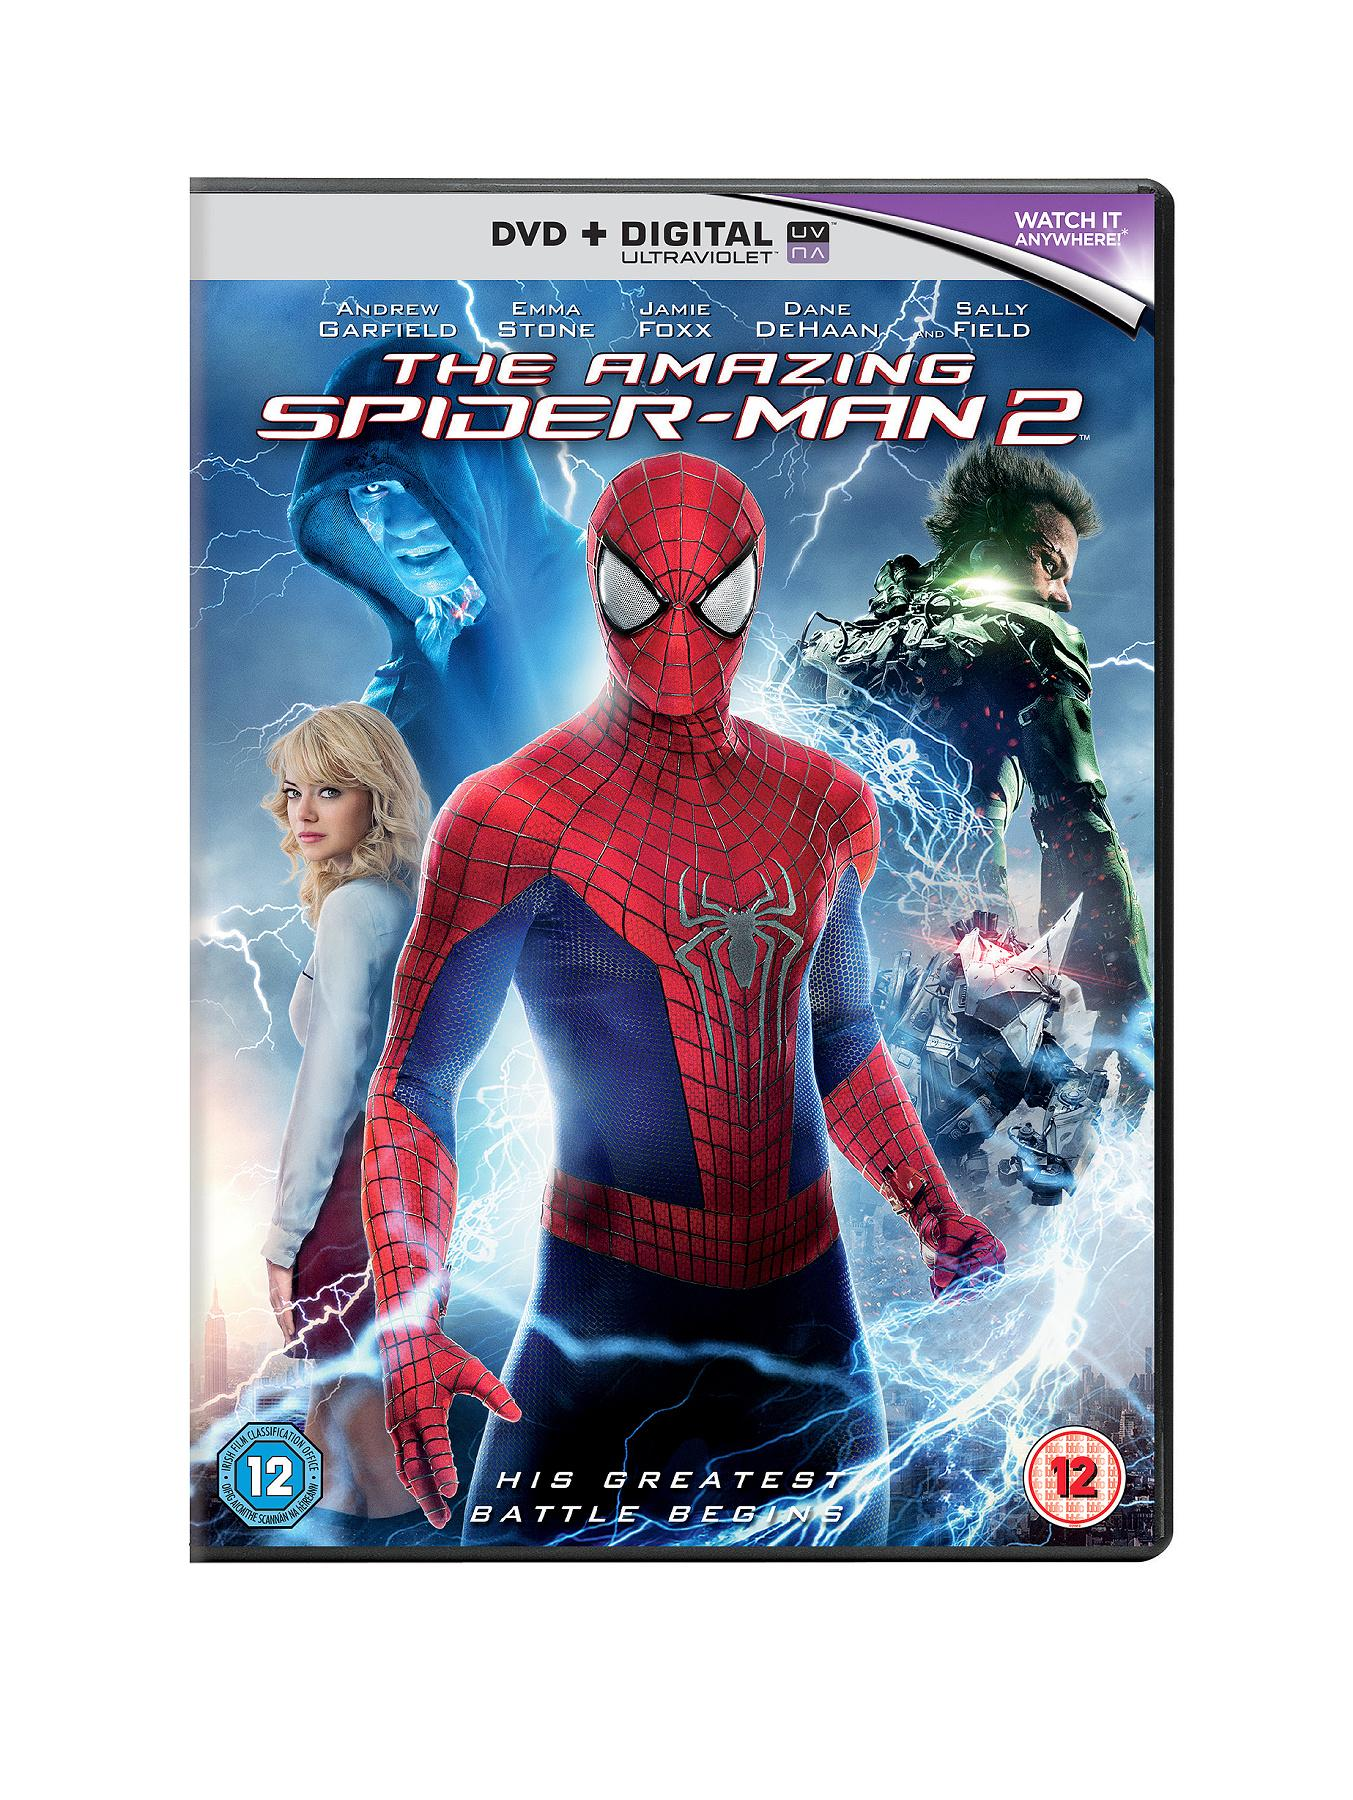 The Amazing Spider-Man 2 DVD FREE foldable flying disc